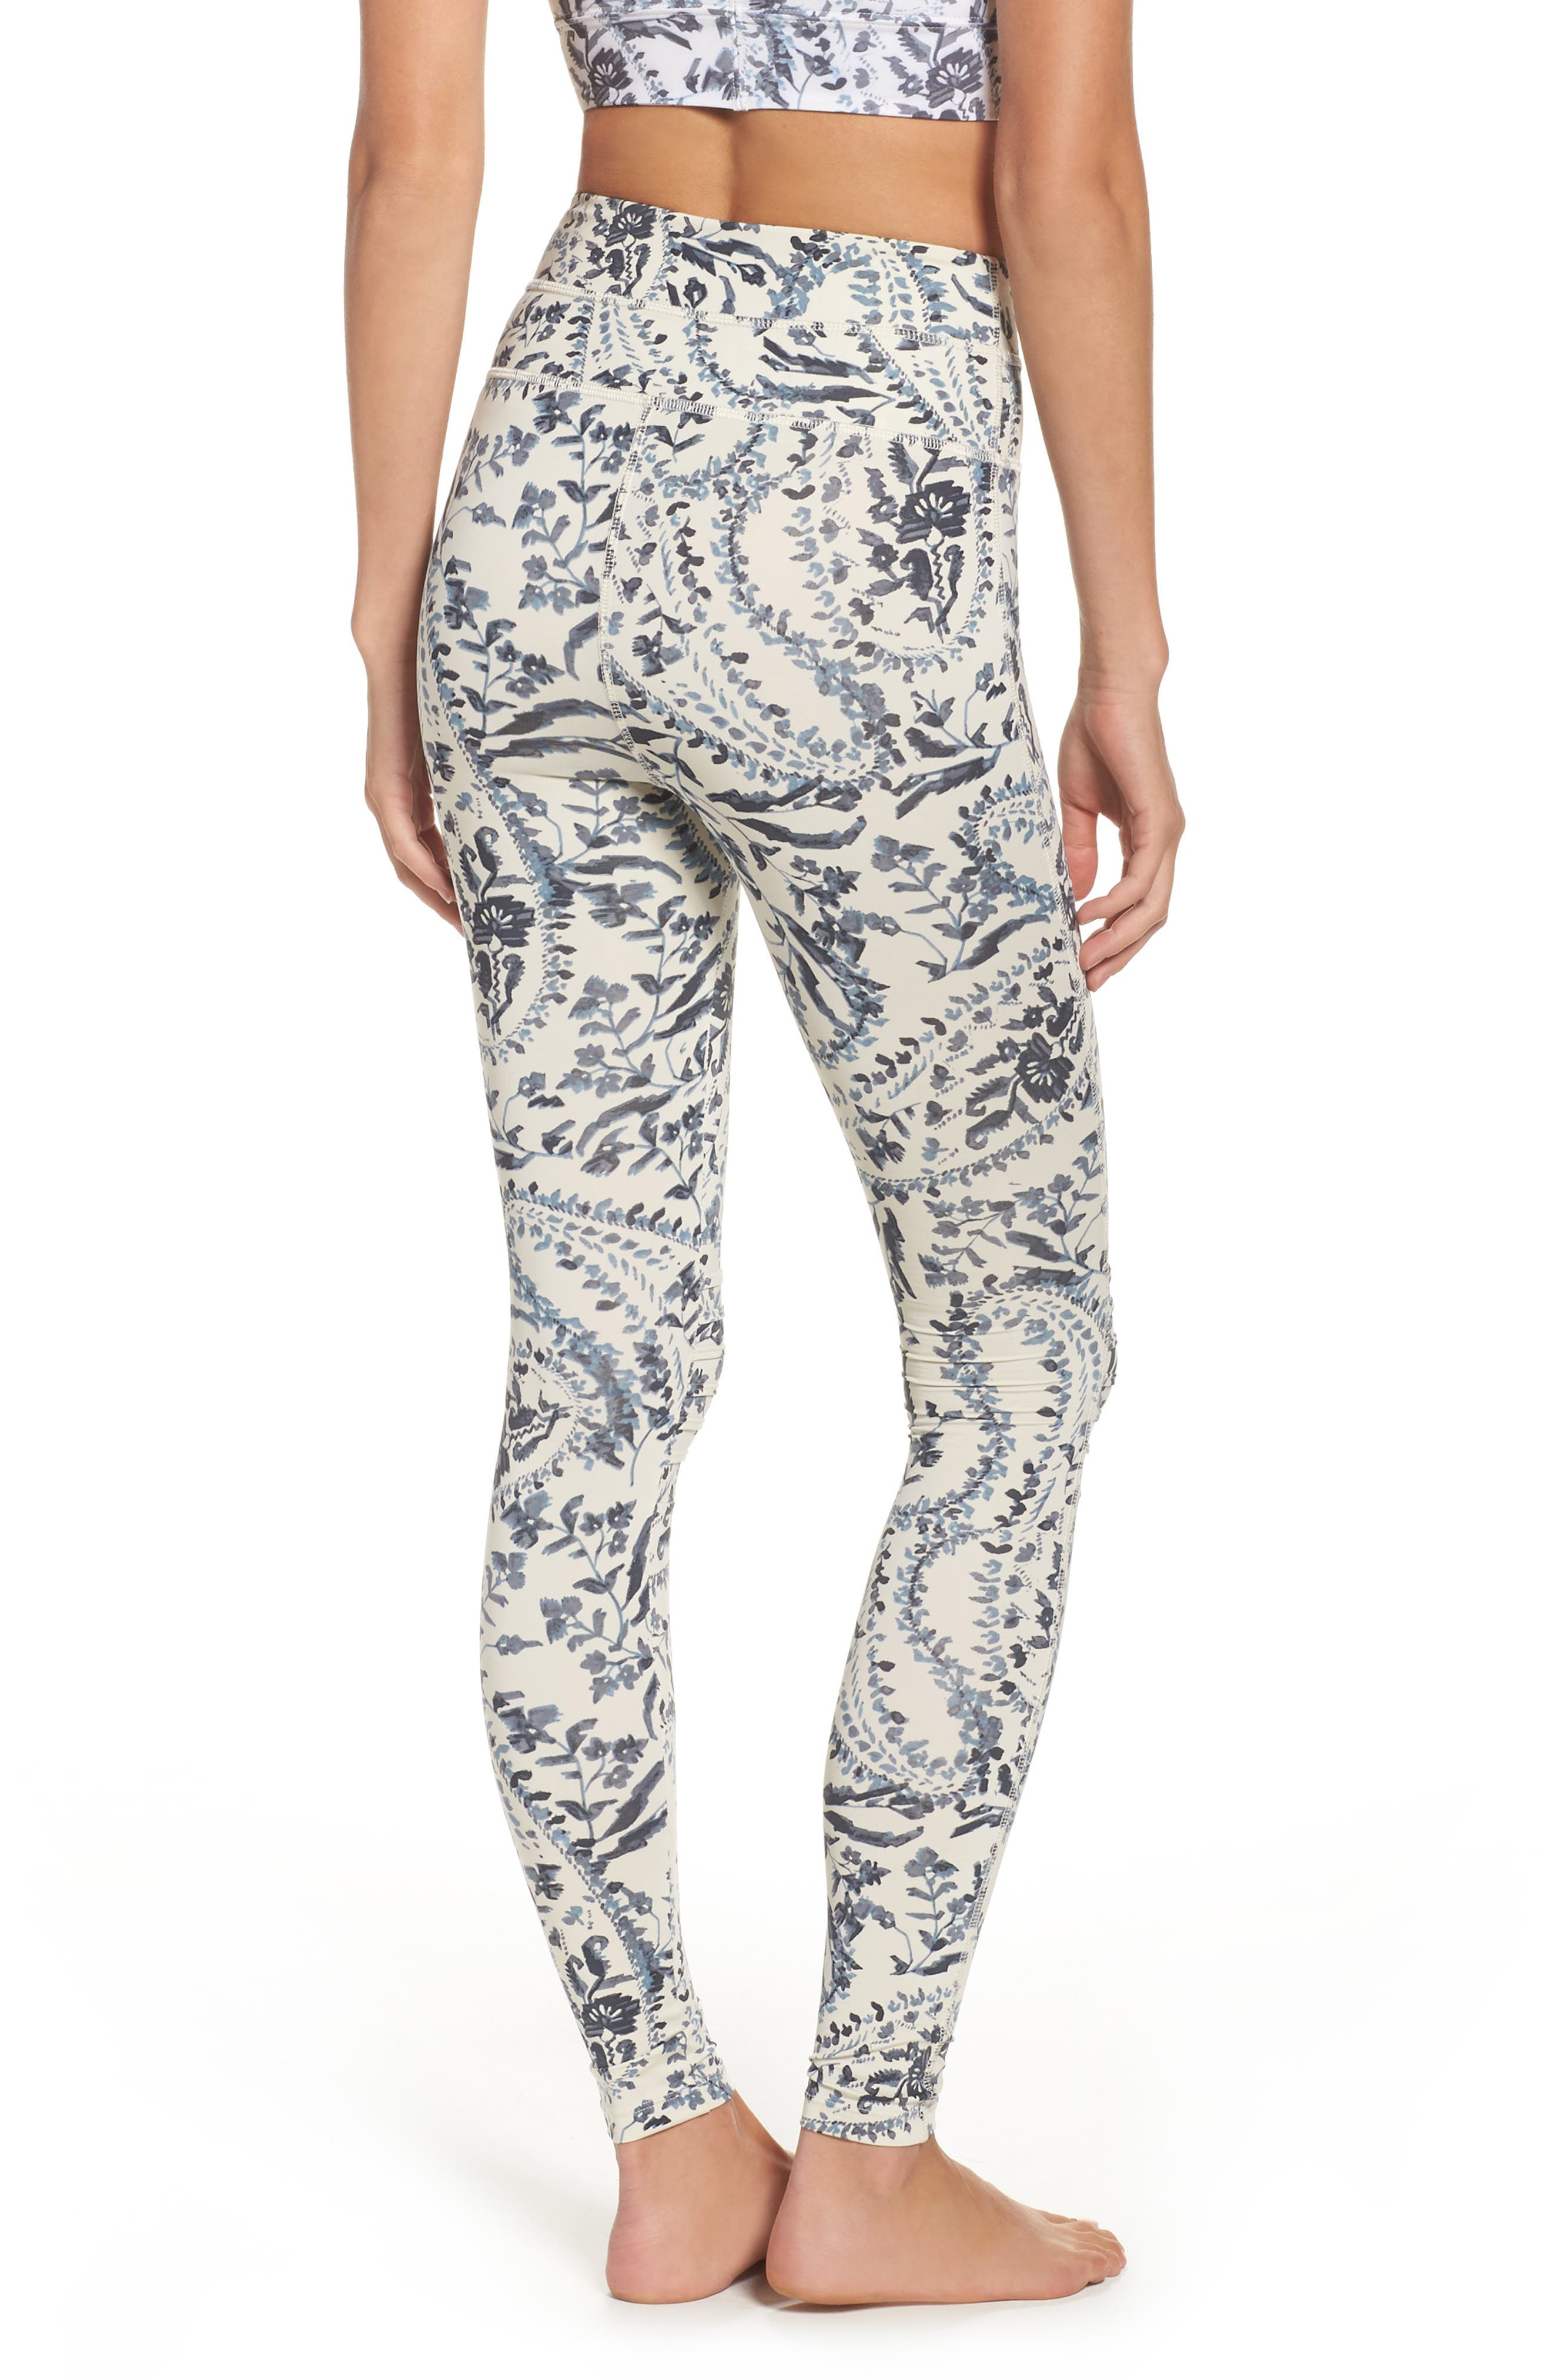 FP Movement Print City Slicker High Waist Leggings,                             Alternate thumbnail 2, color,                             400